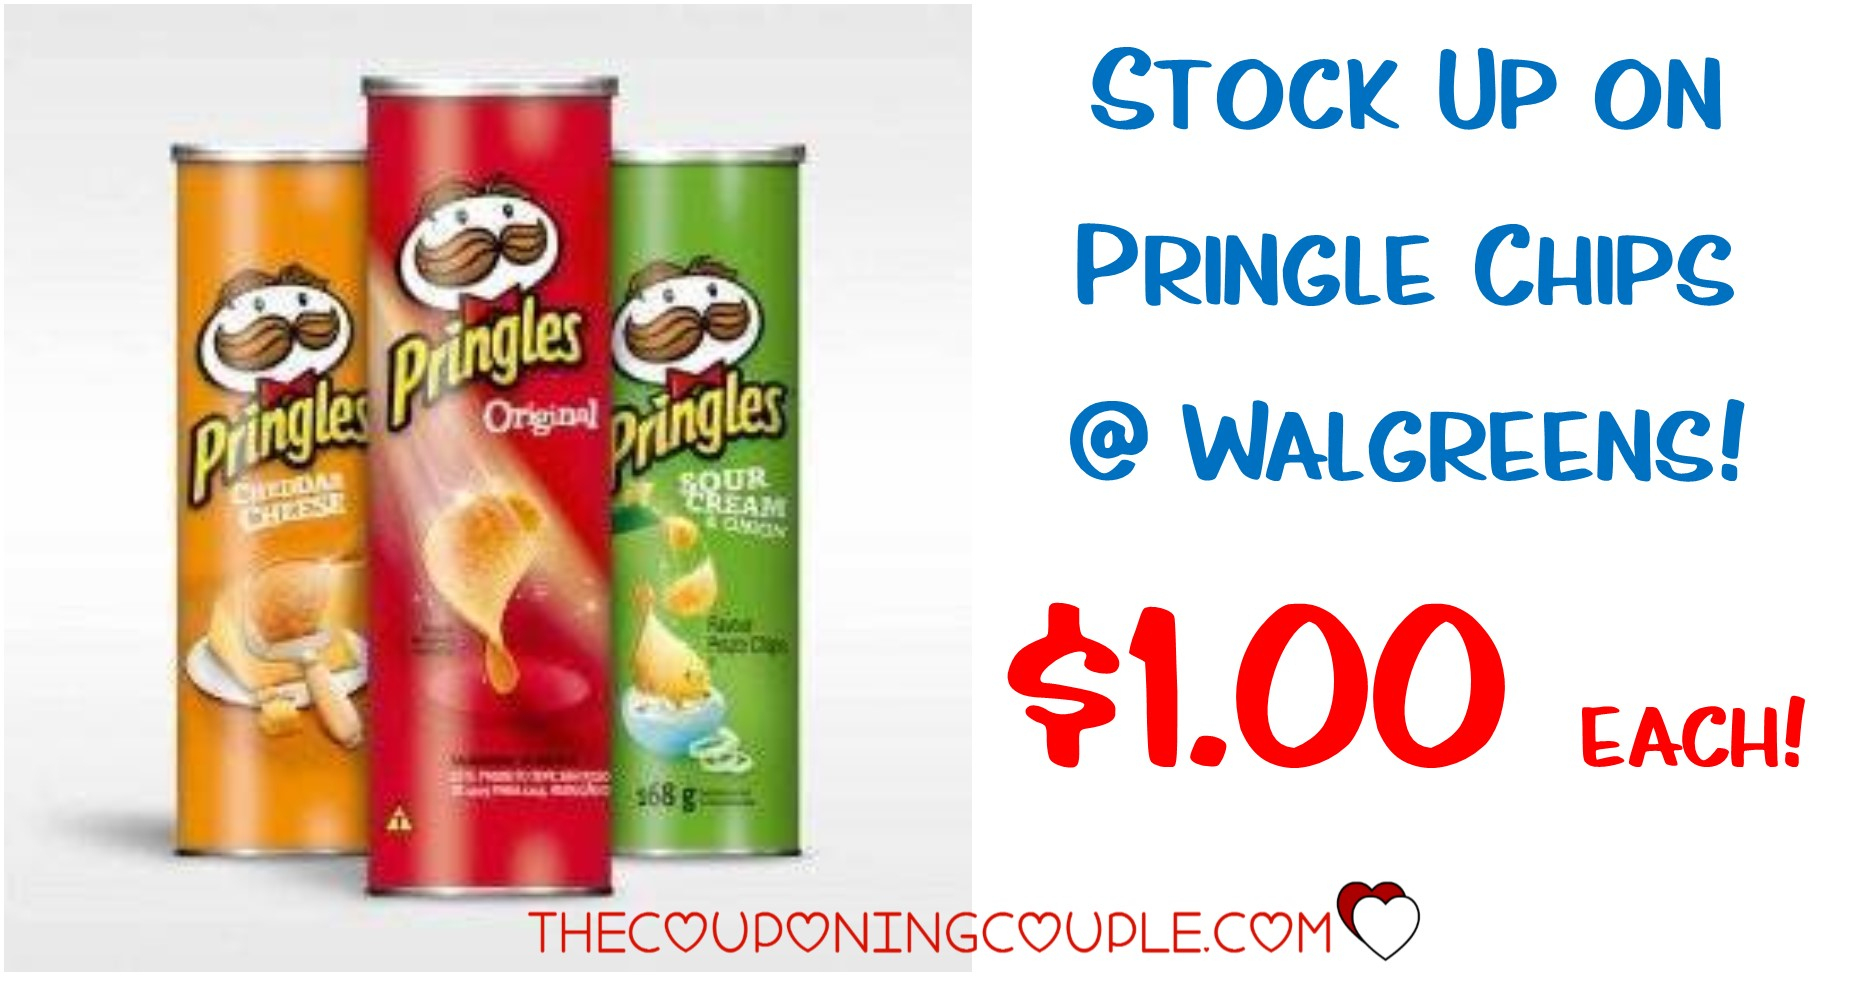 Cheap Deal On Pringles Chips @ Walgreens! $1.00 Each - Free Printable Pringles Coupons